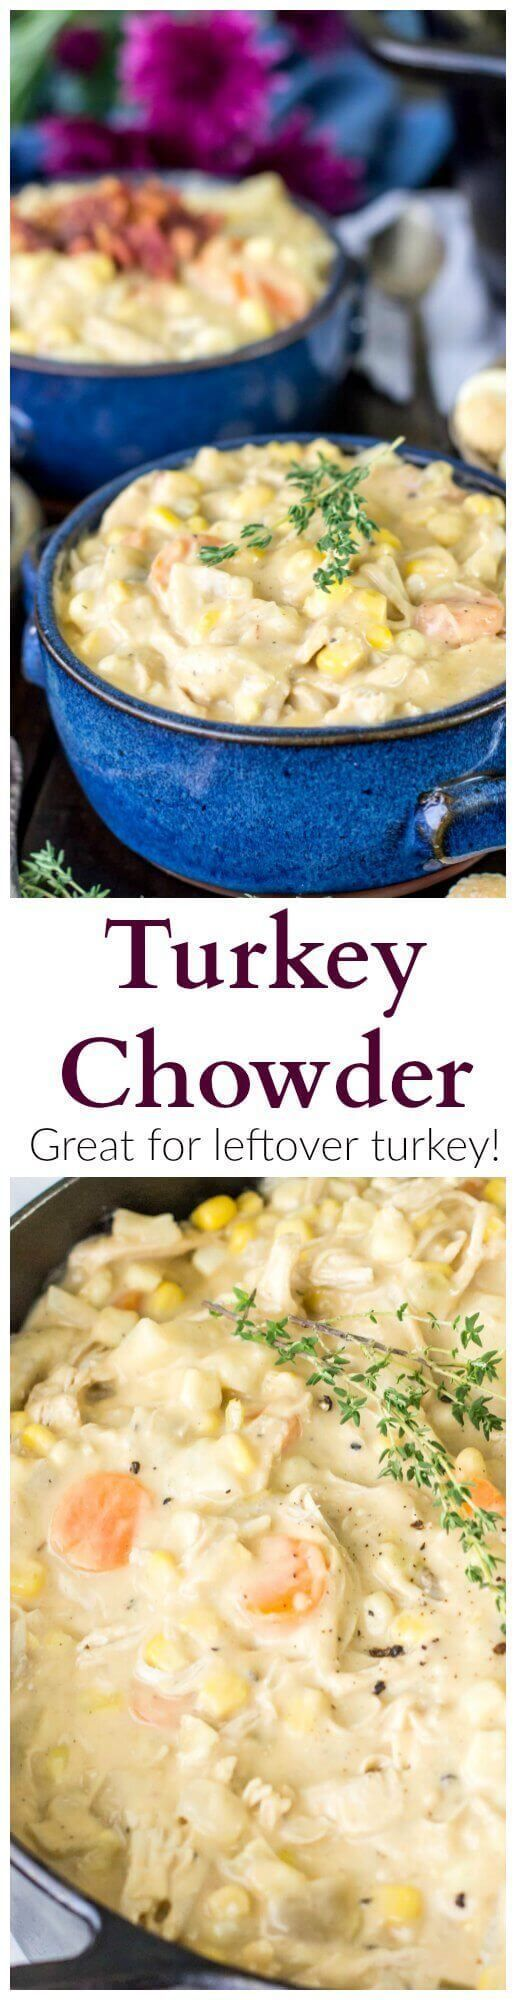 A creamy, simple, hearty turkey chowder that doubles as a great way to use up leftover turkey. I am very easily motivated and appeased by food.